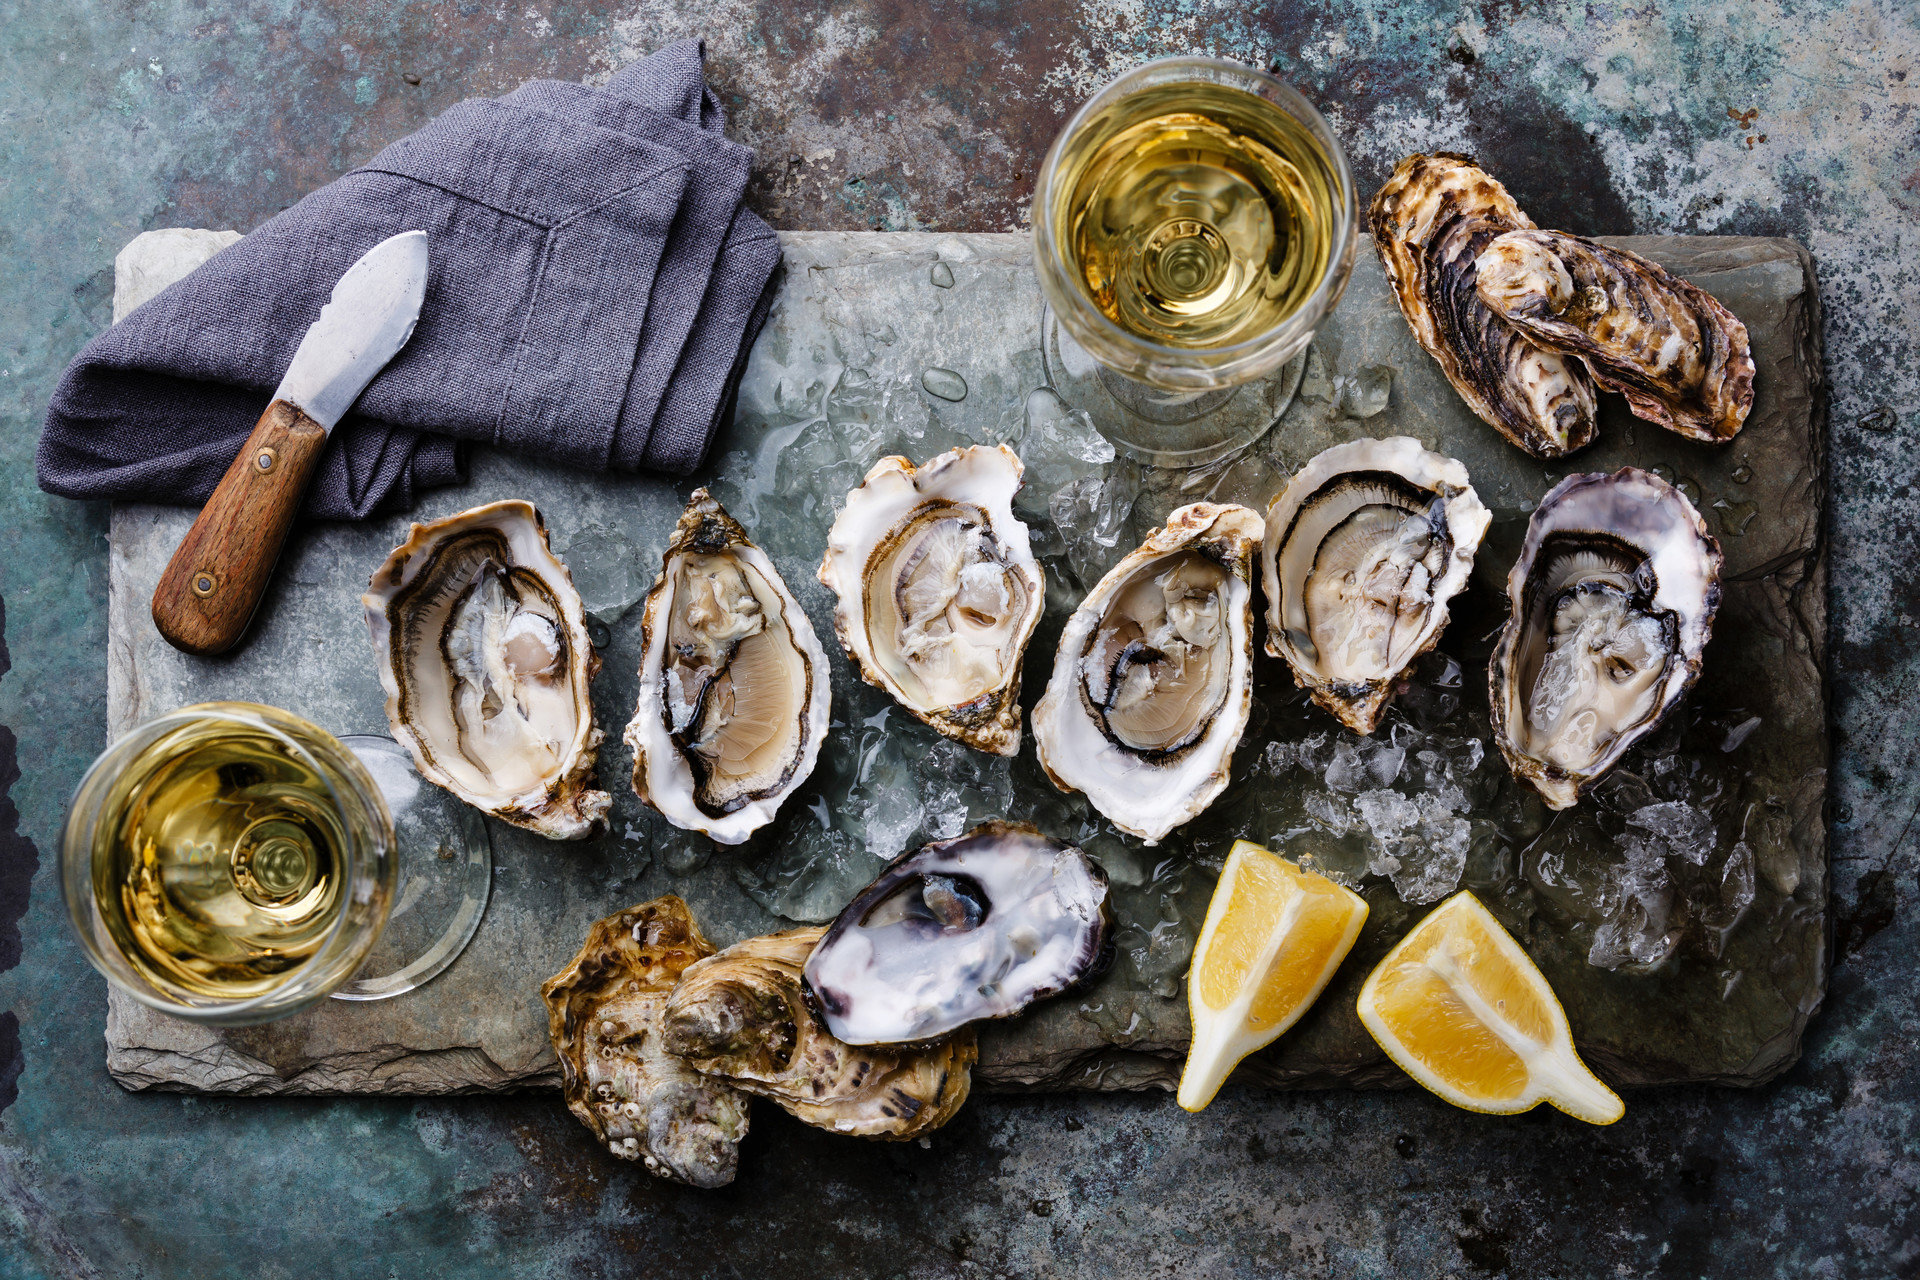 Food + Drink Trip Ideas food Seafood oyster wood invertebrate painting clams oysters mussels and scallops still life material mussel several